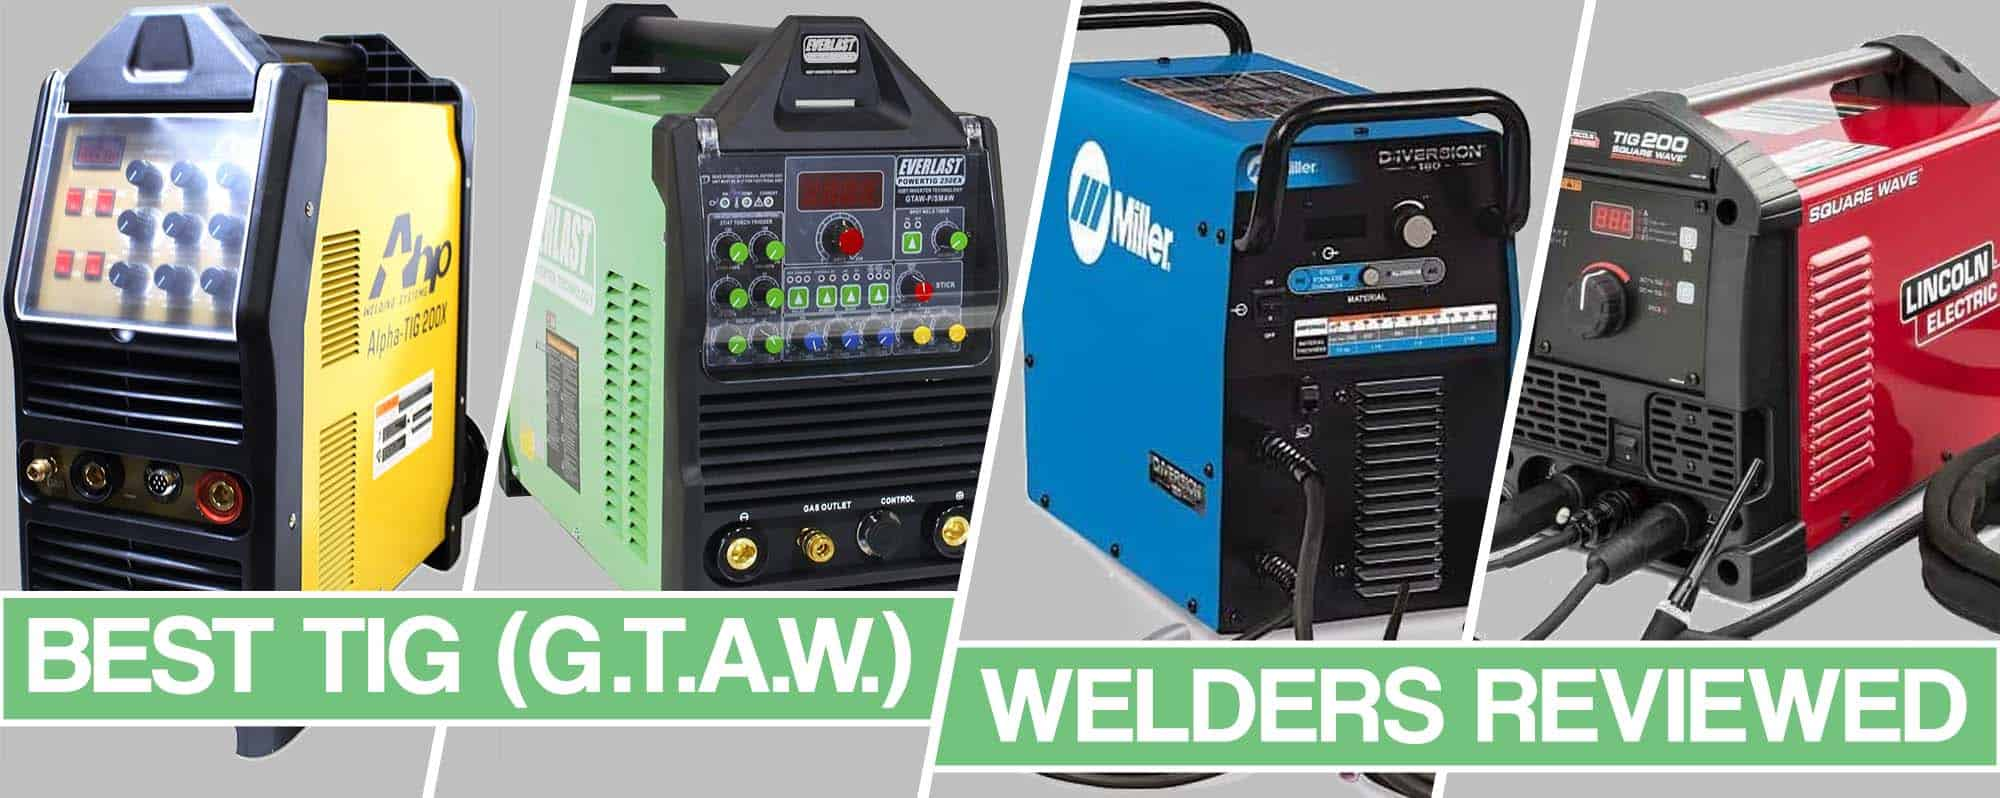 image of best TIG welders